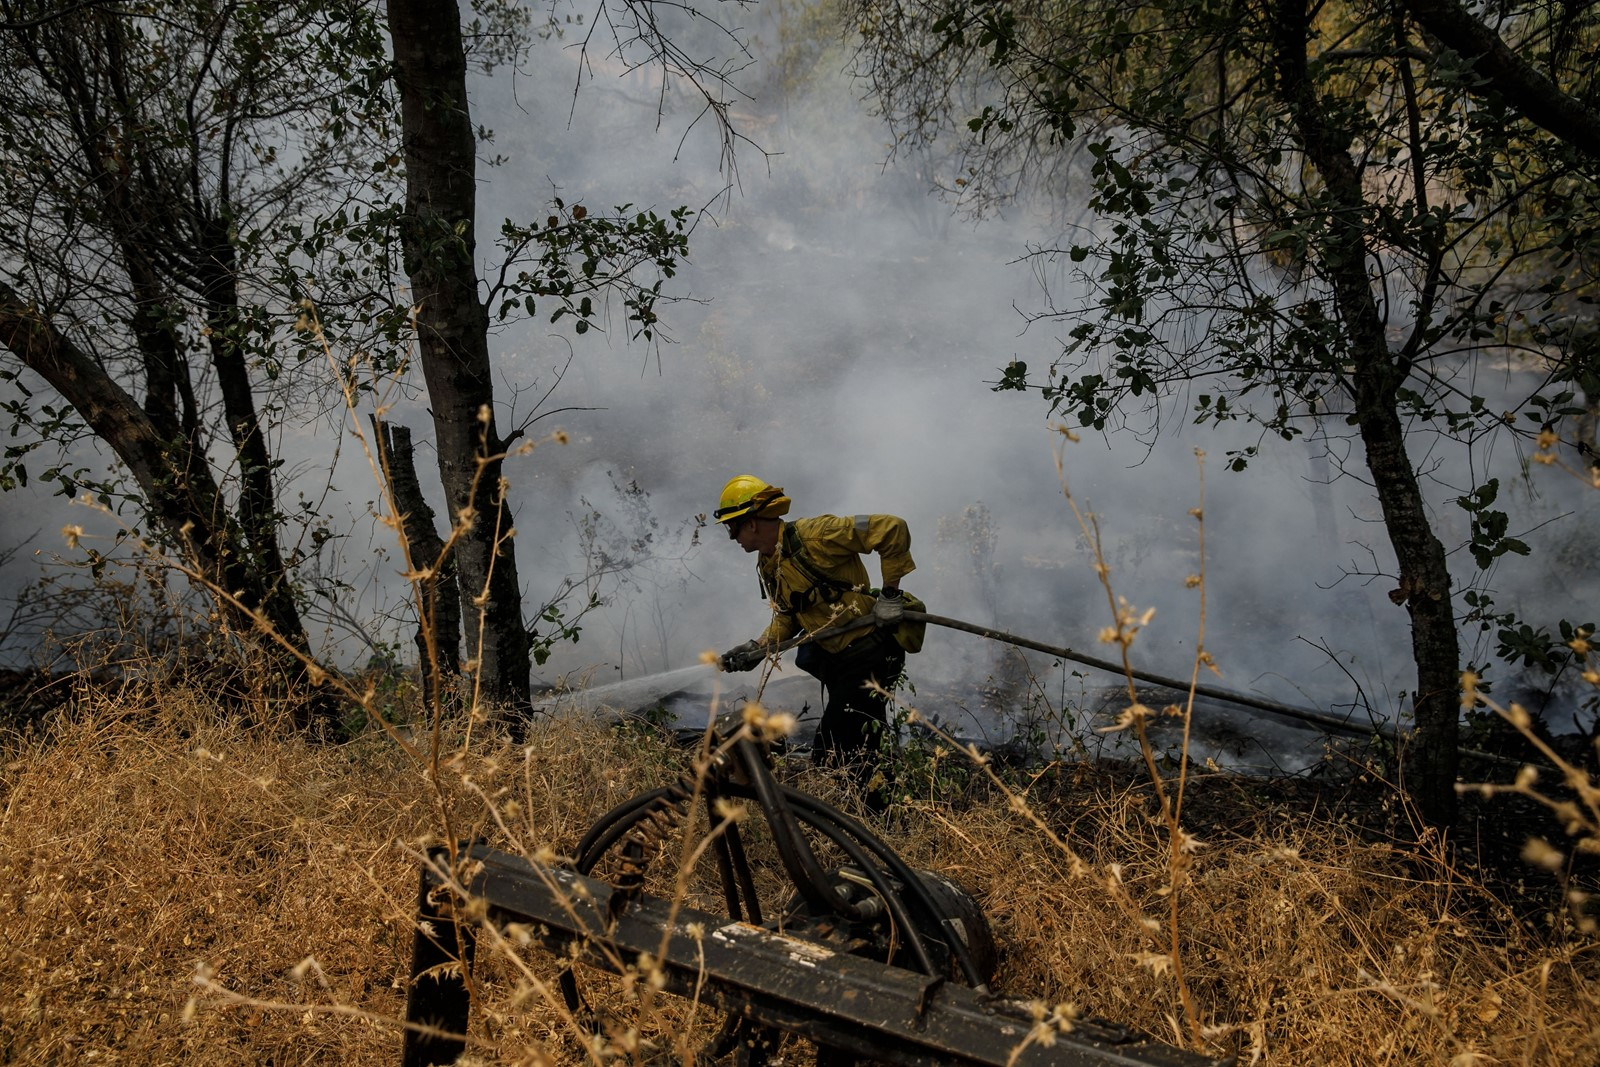 A firefighter from Los Angeles douses hot spots in the Carr fire near homes in Redding on Sunday. About 12,000 firefighters from within California are battling 17 wildfires burning over 200,000 acres across the state. — Photograph: Marcus Yam/Los Angeles Times.